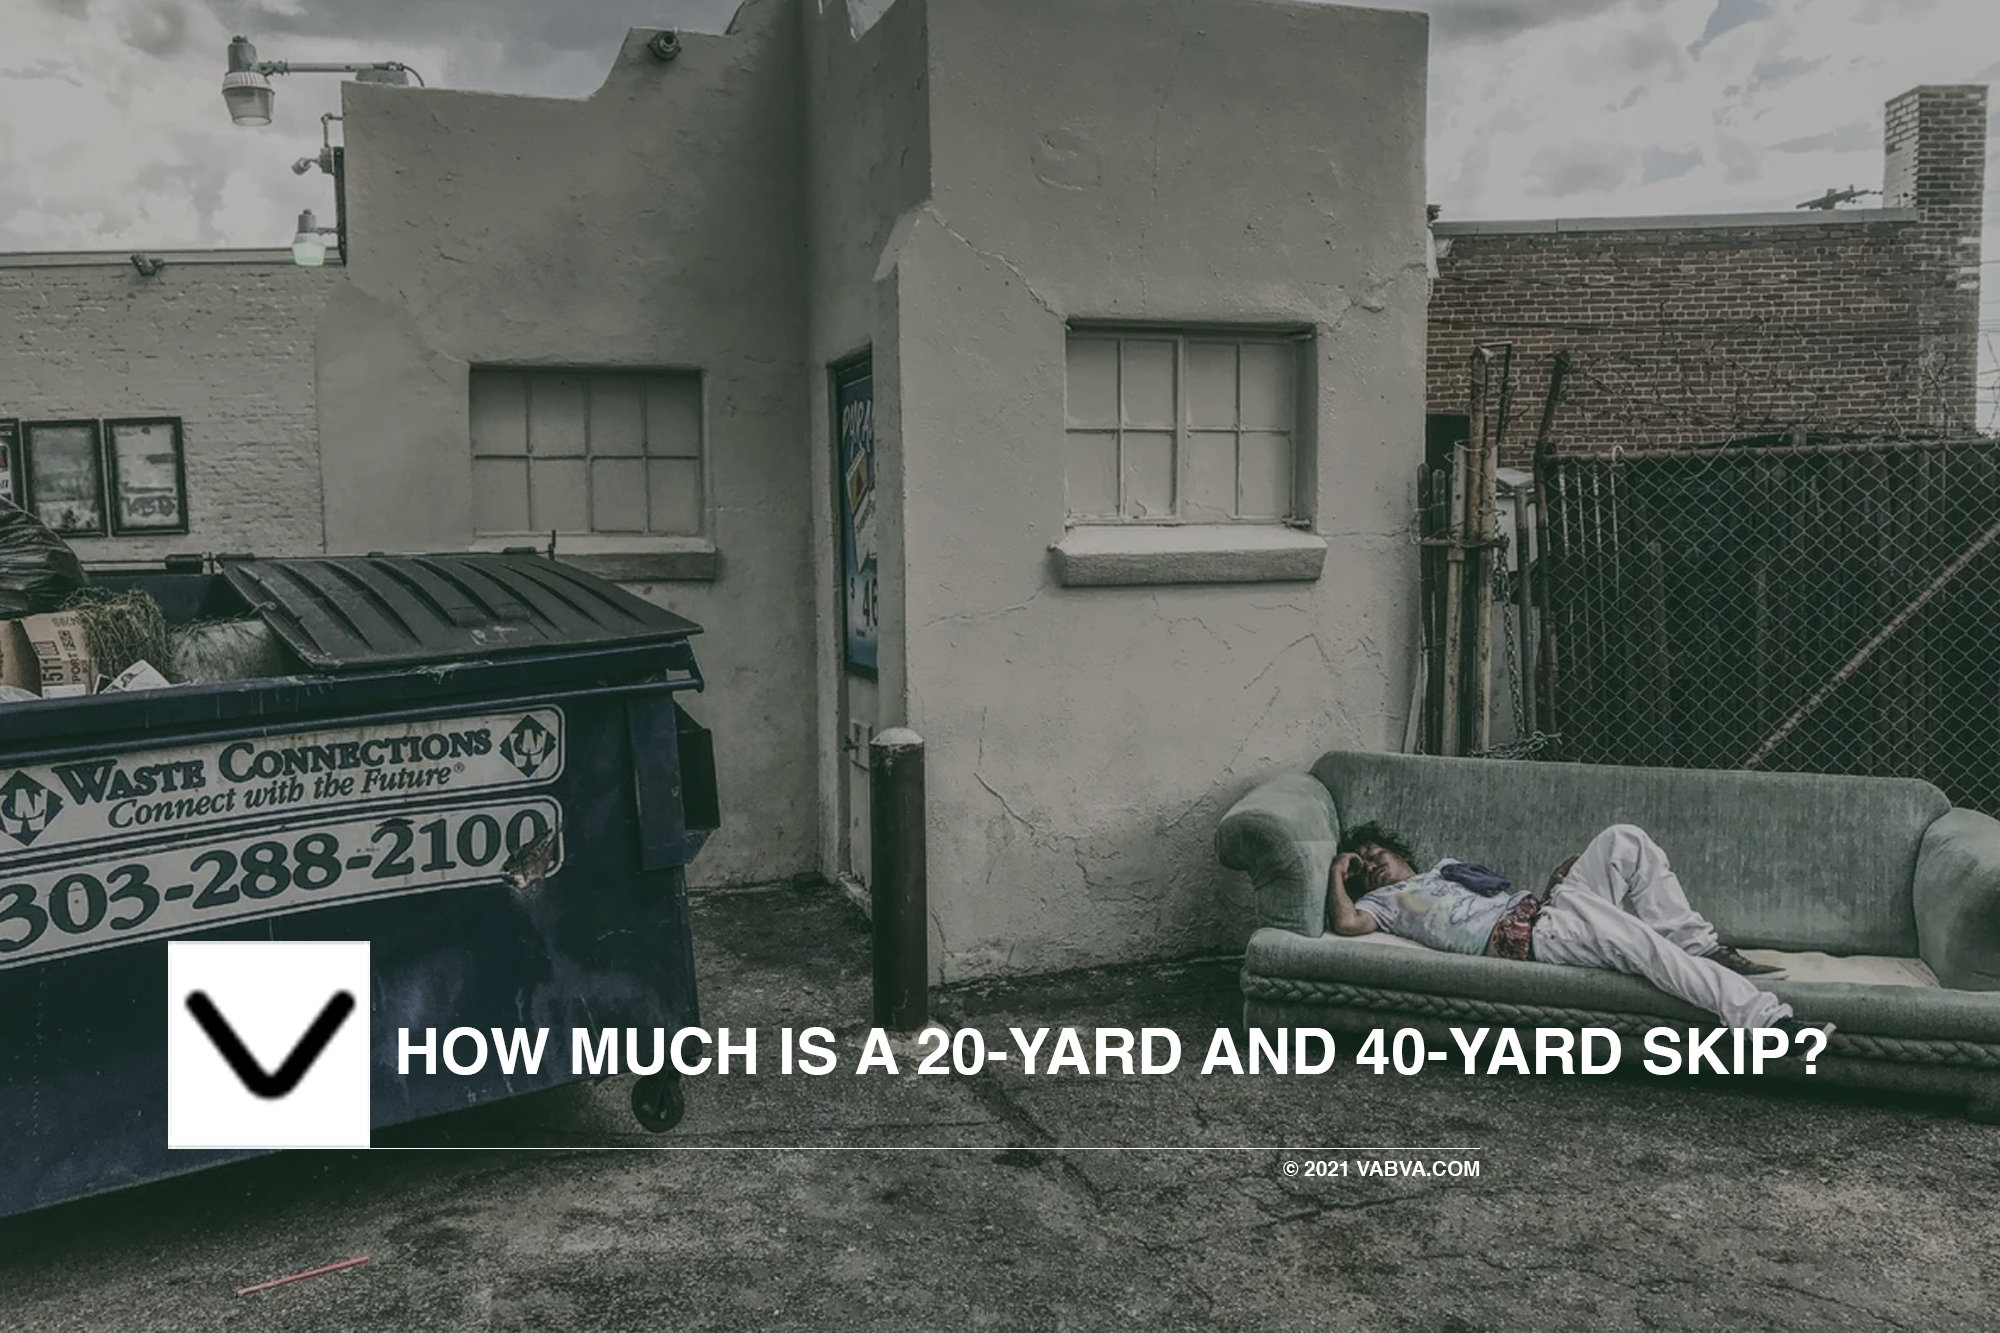 How much is a 20-Yard and 40-Yard skip?